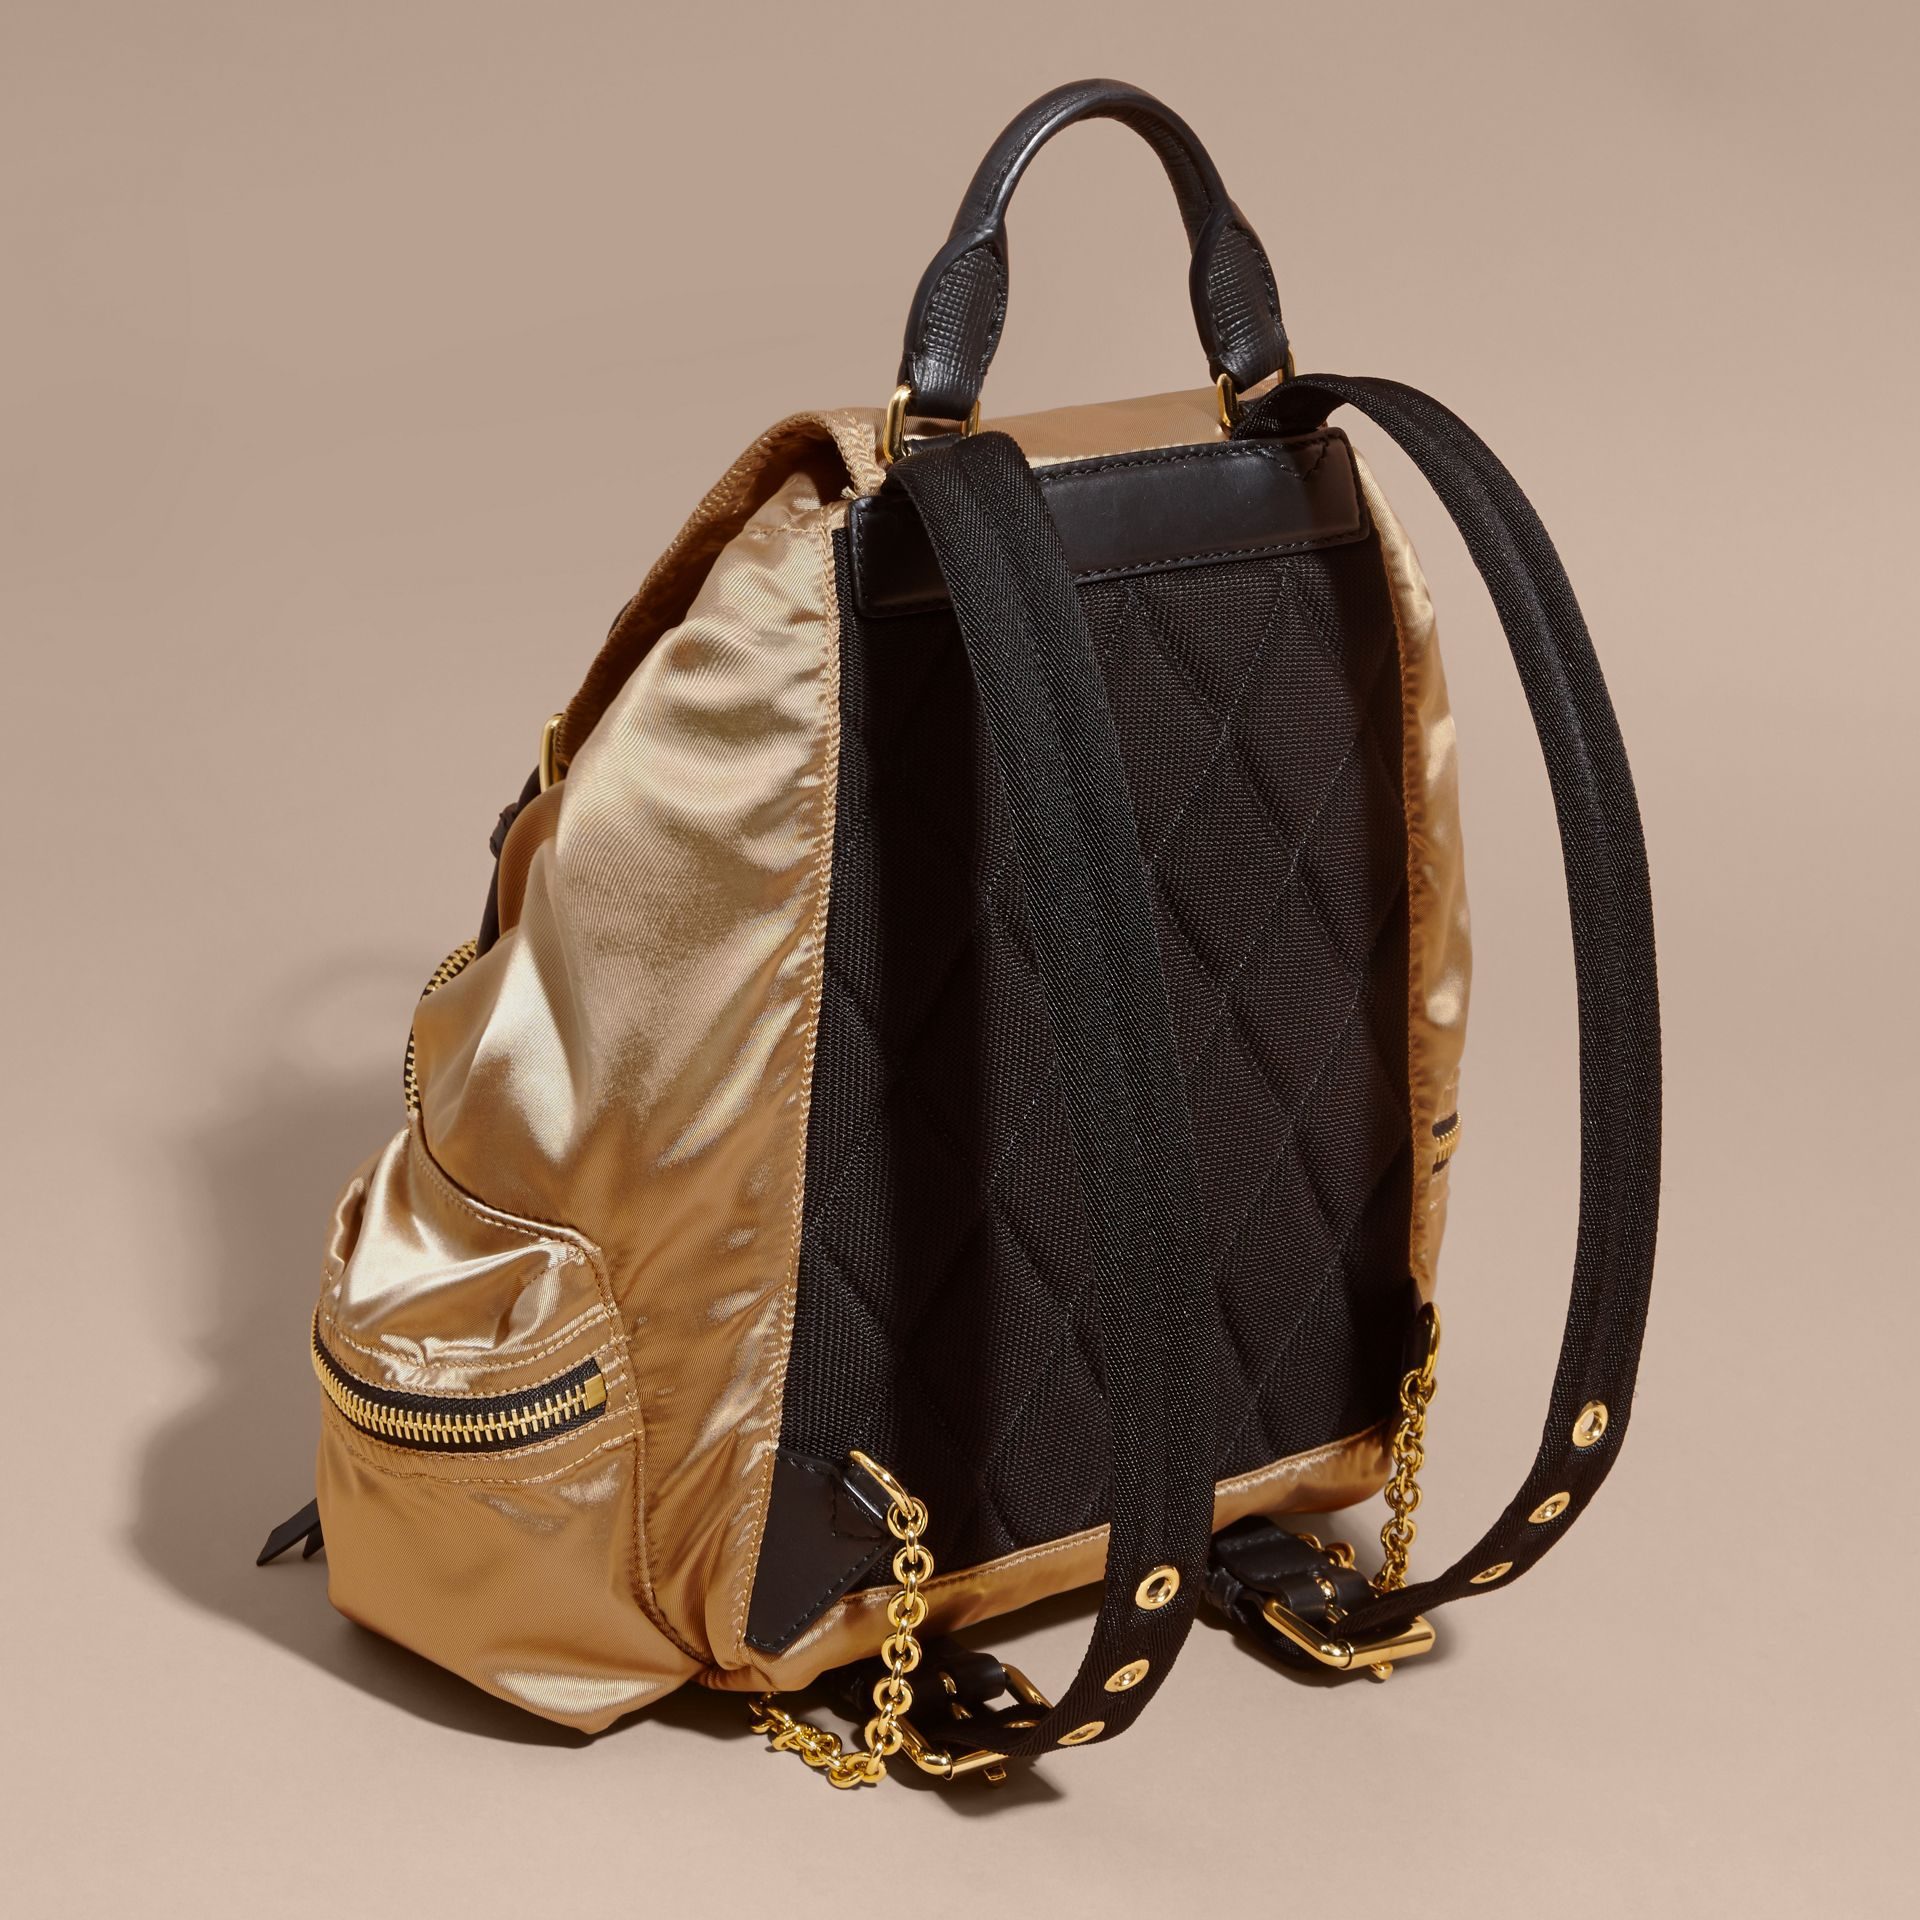 The Medium Rucksack in Two-tone Nylon and Leather in Gold/black - Women | Burberry - gallery image 4